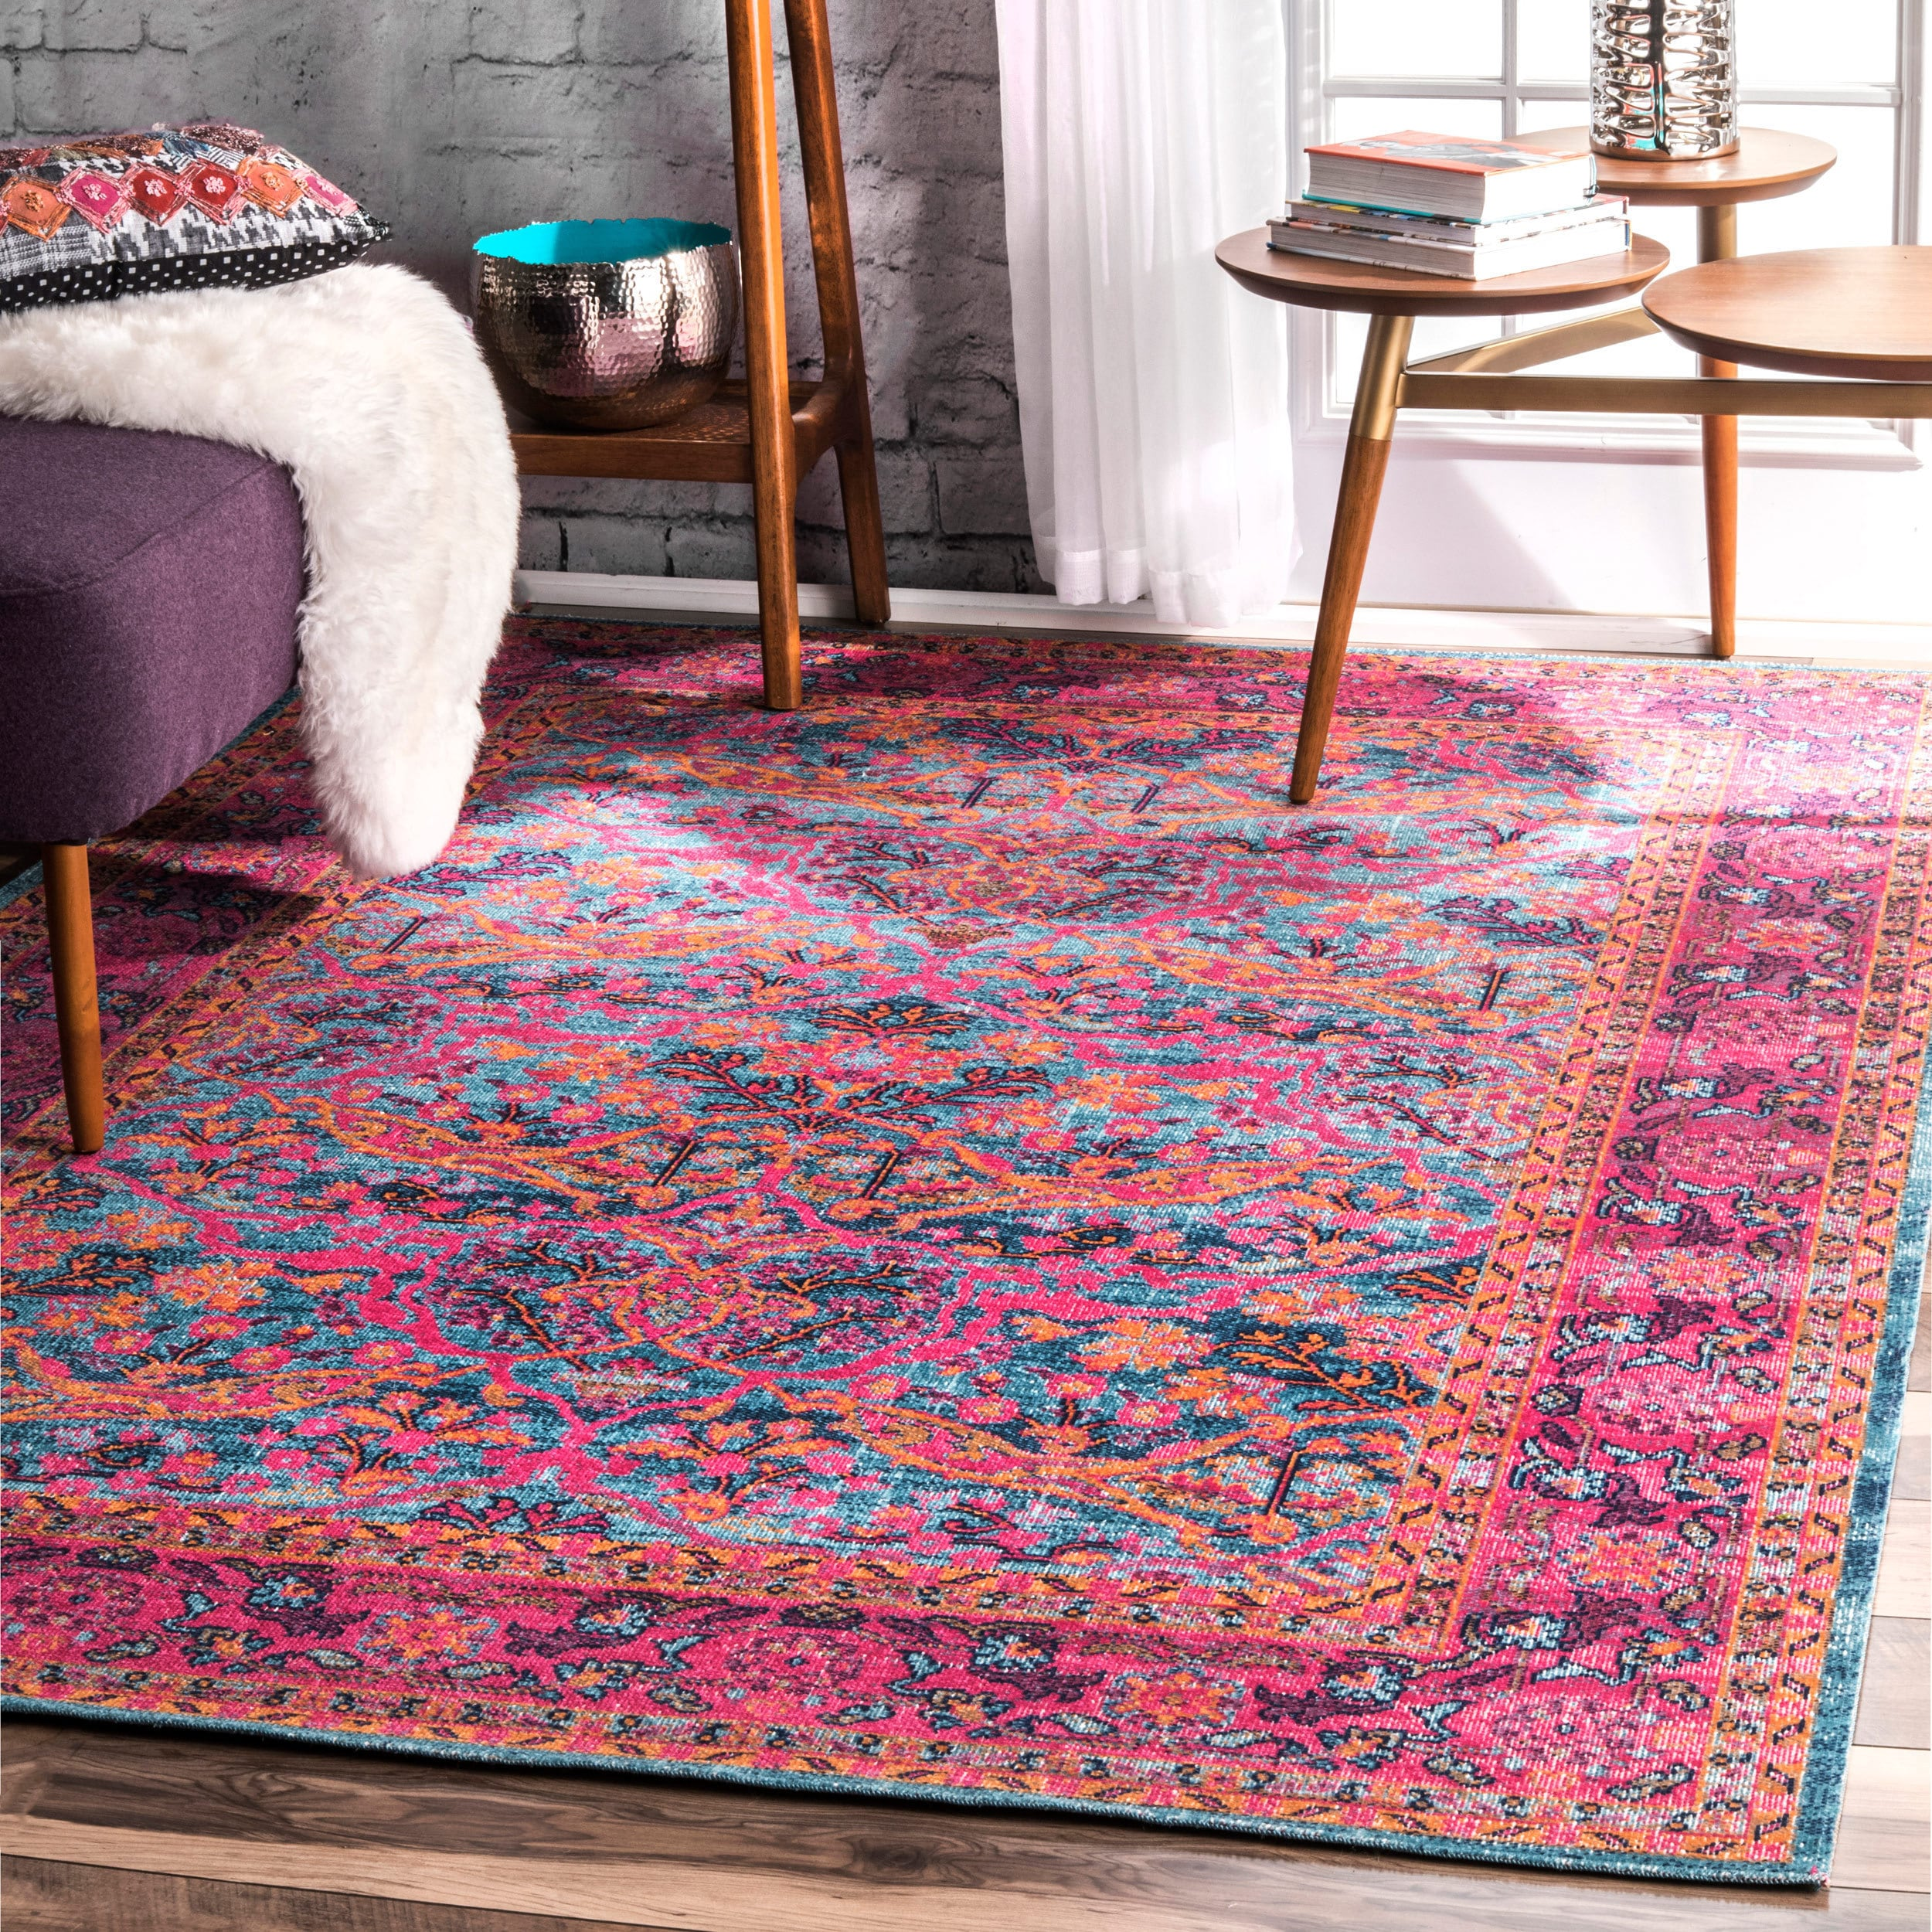 nuLOOM Traditional Floral Pink Runner Rug (2'6 x 8') (Pin...